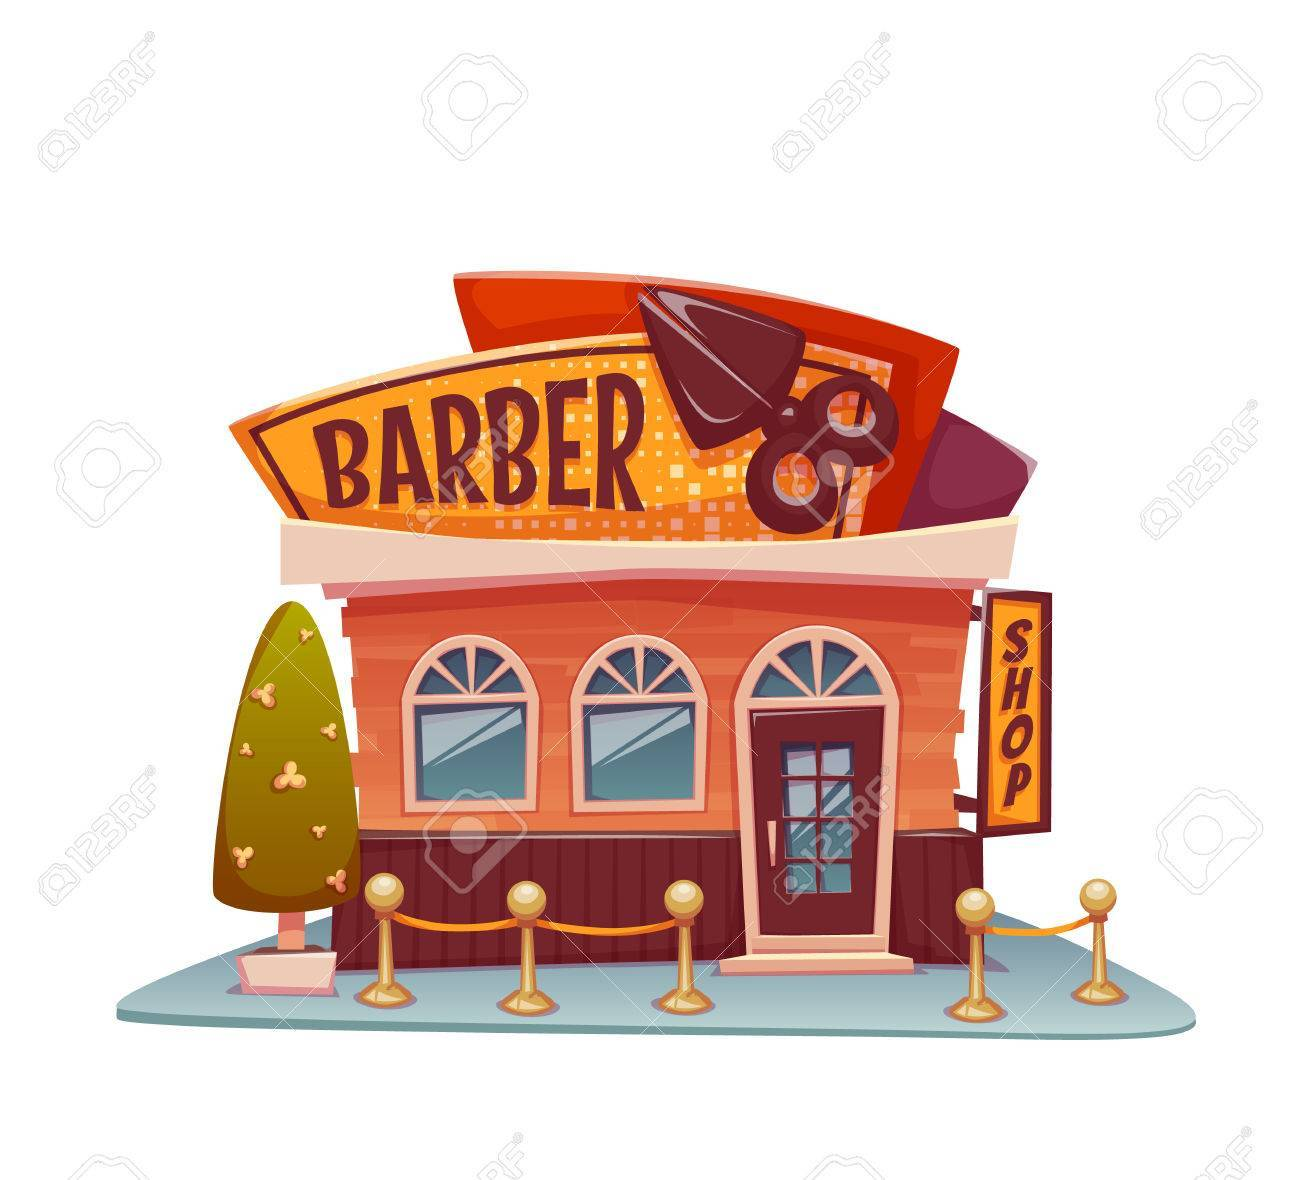 Barber shop building with bright banner. Vector illustration.